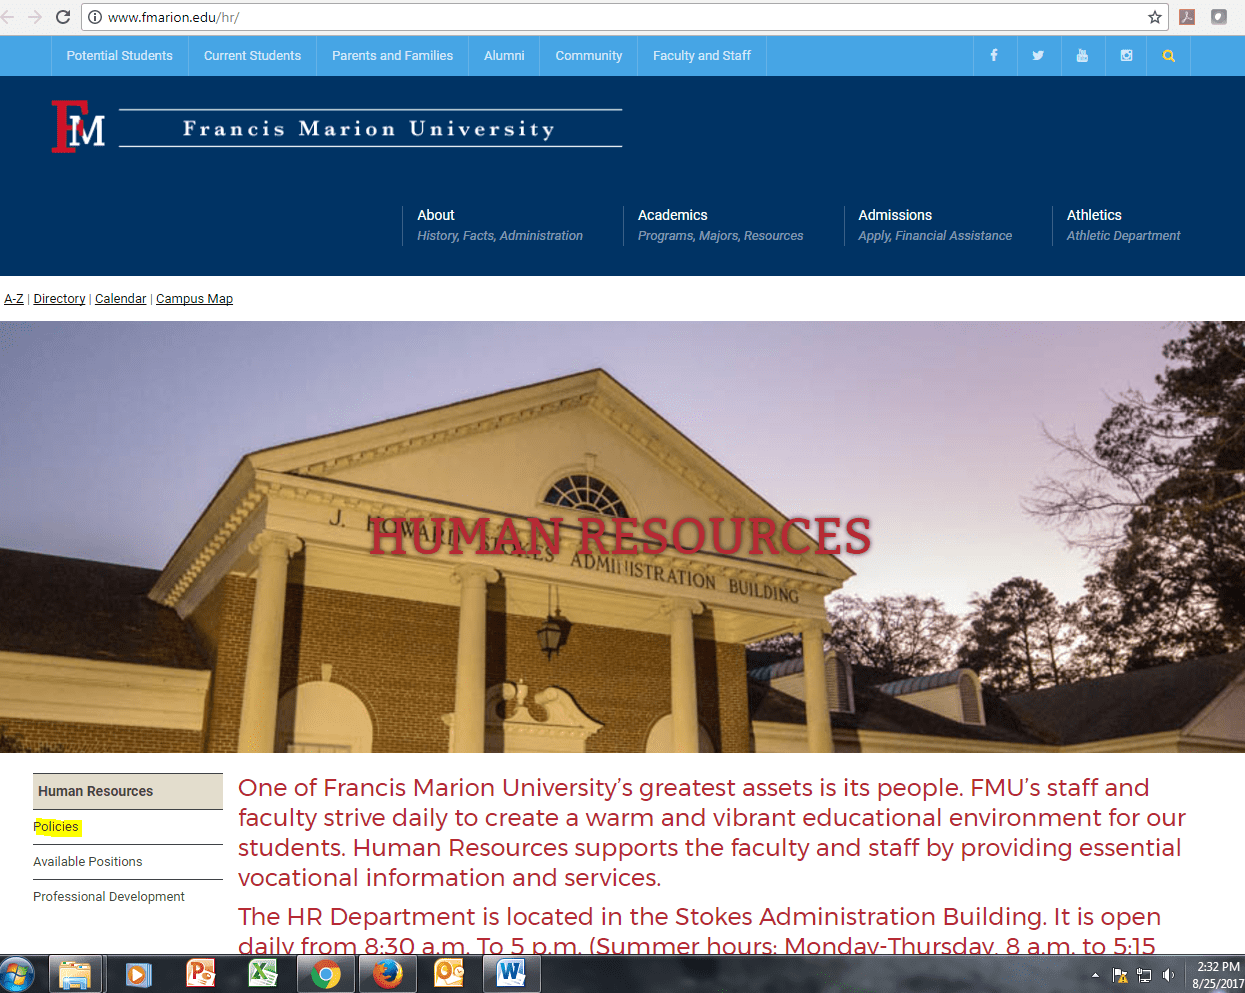 3 2 9 Personnel Appointment | Francis Marion University